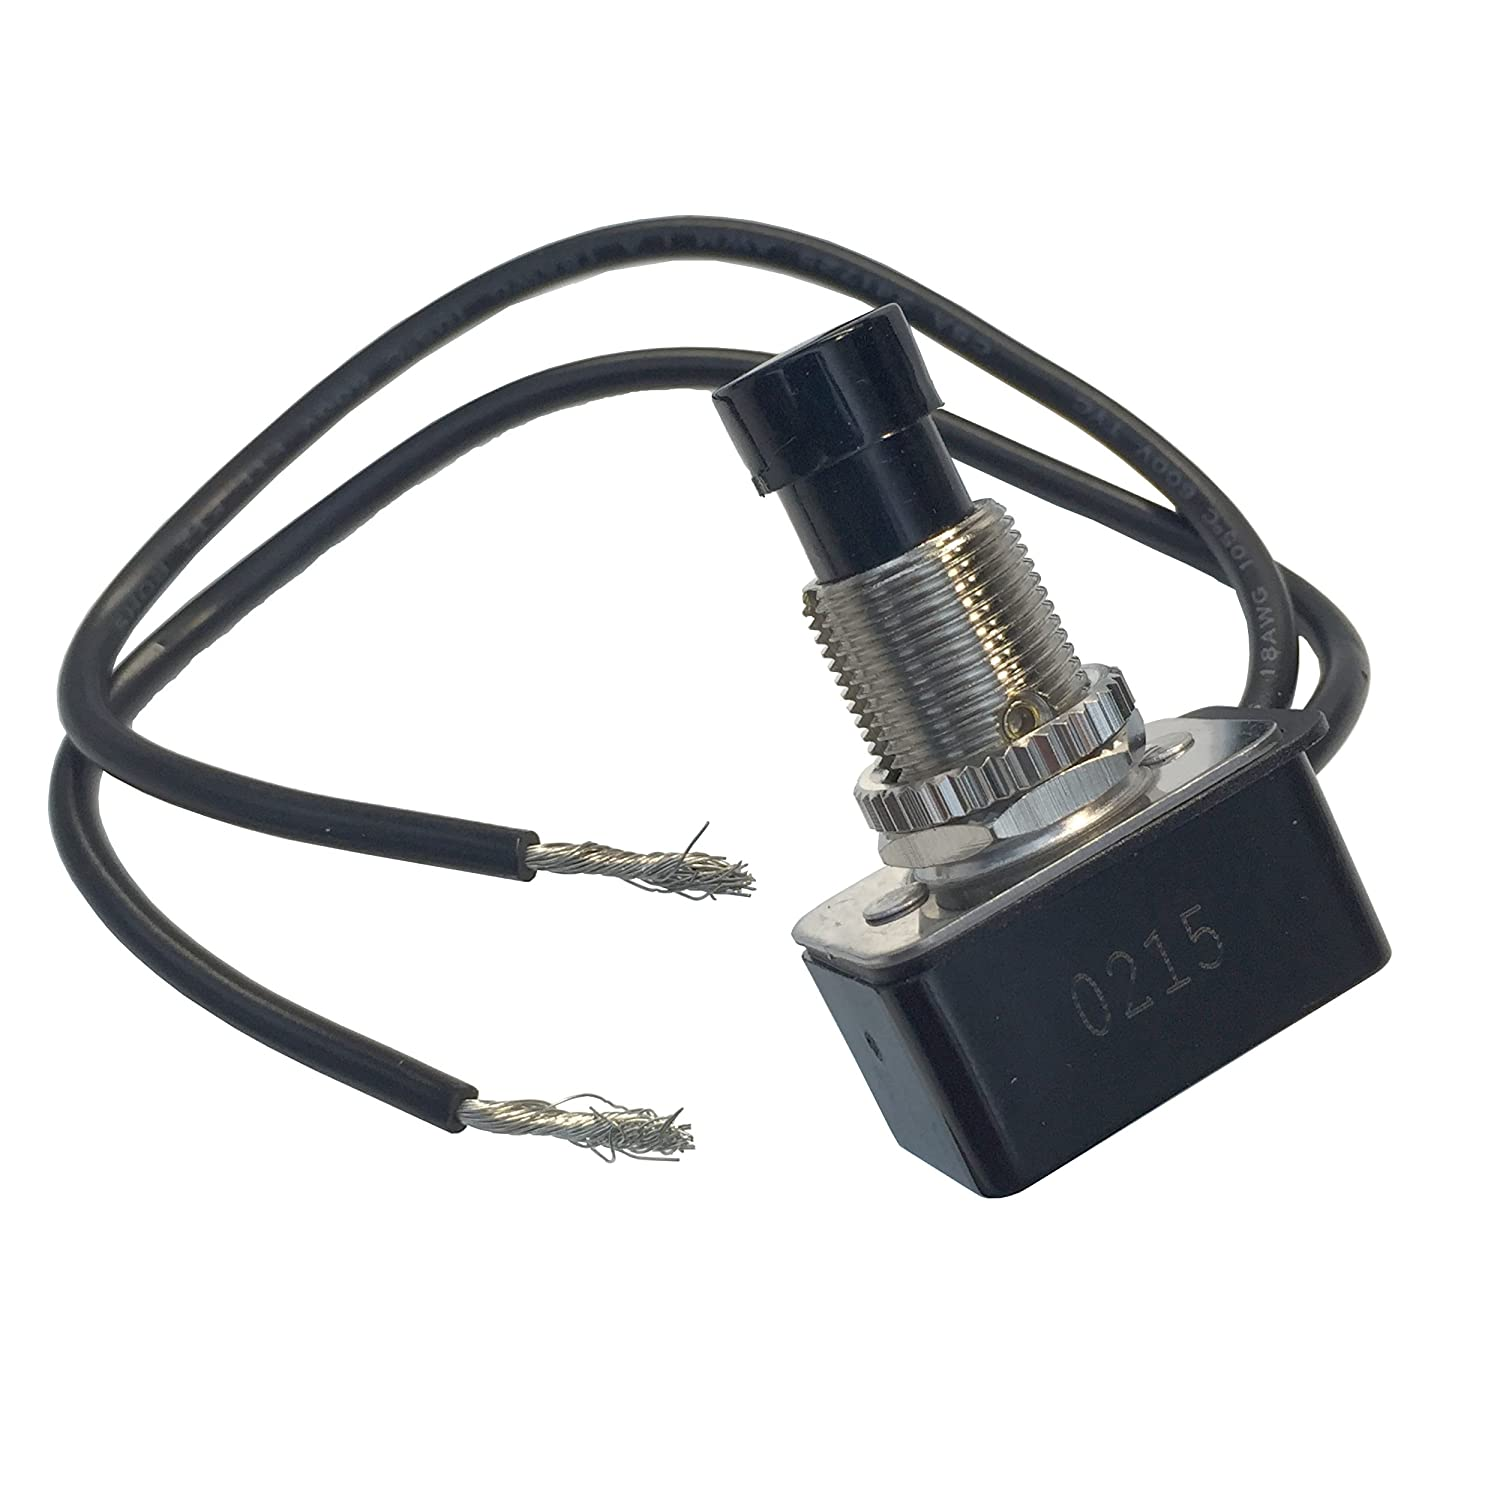 Gardner Bender Gsw 21 Maintained Contact Push Button Switch Spst Wiring Single Pole Throw Rocker With Light Page On Off Motor Rated 10 A 125 V Ac For Replacement Industrial Equipment Automotive Toggle Switches